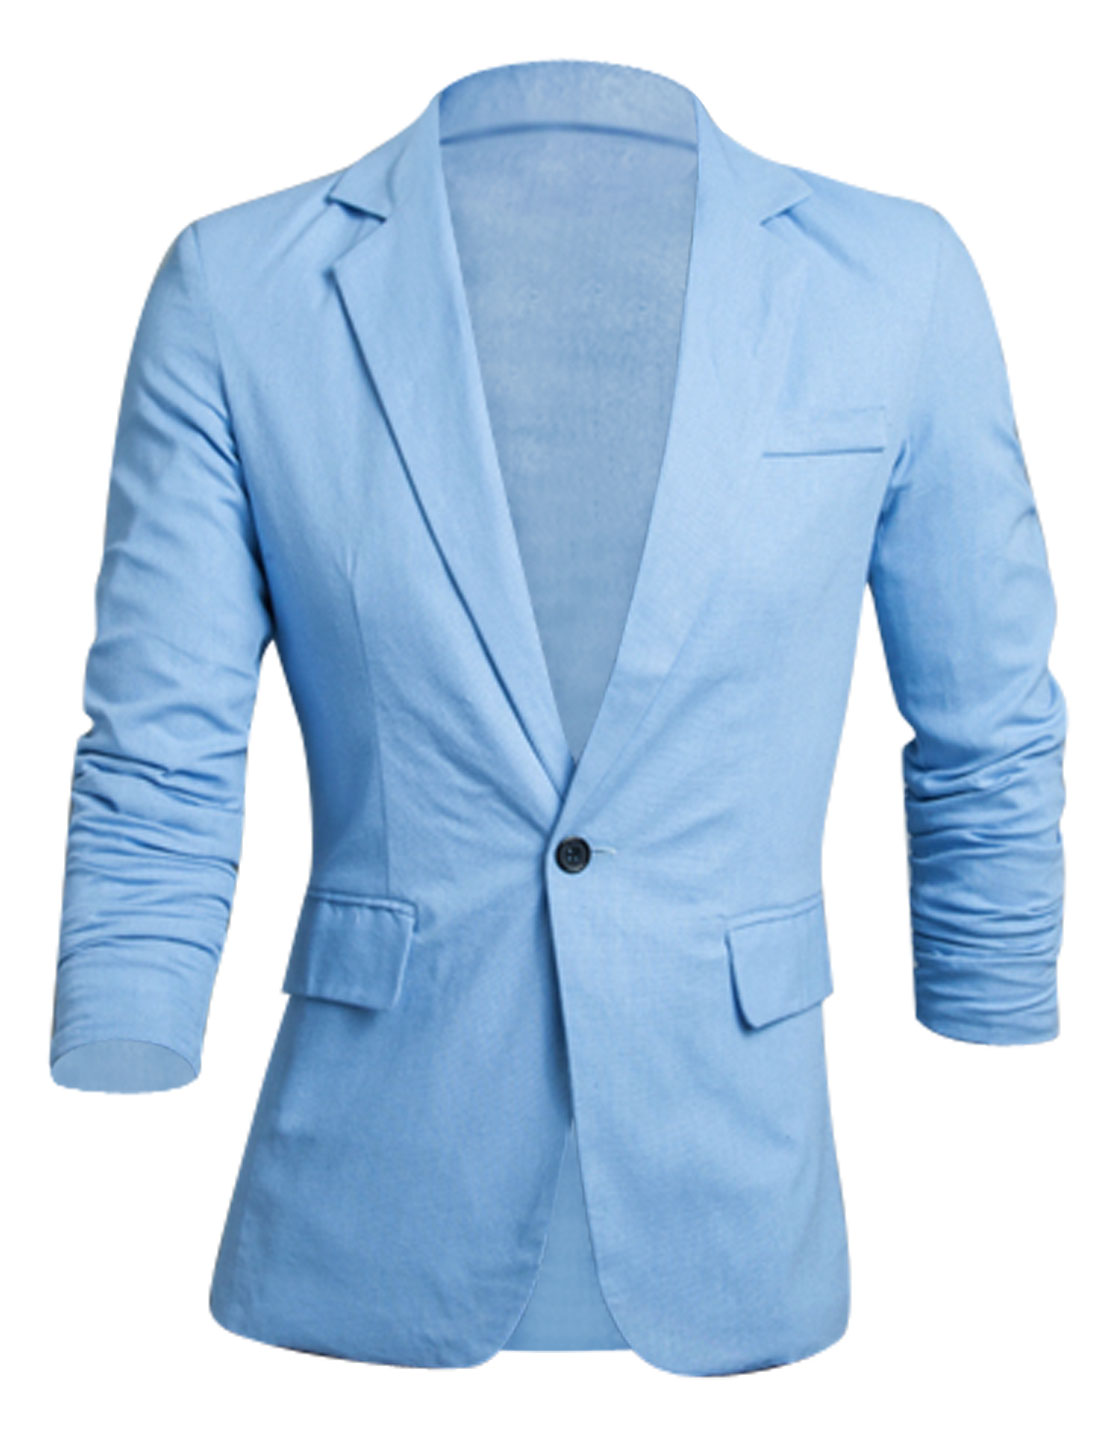 Men Notched Lapel One Button Padded Shoulder Slim Cut Linen Blazer Sky Blue M